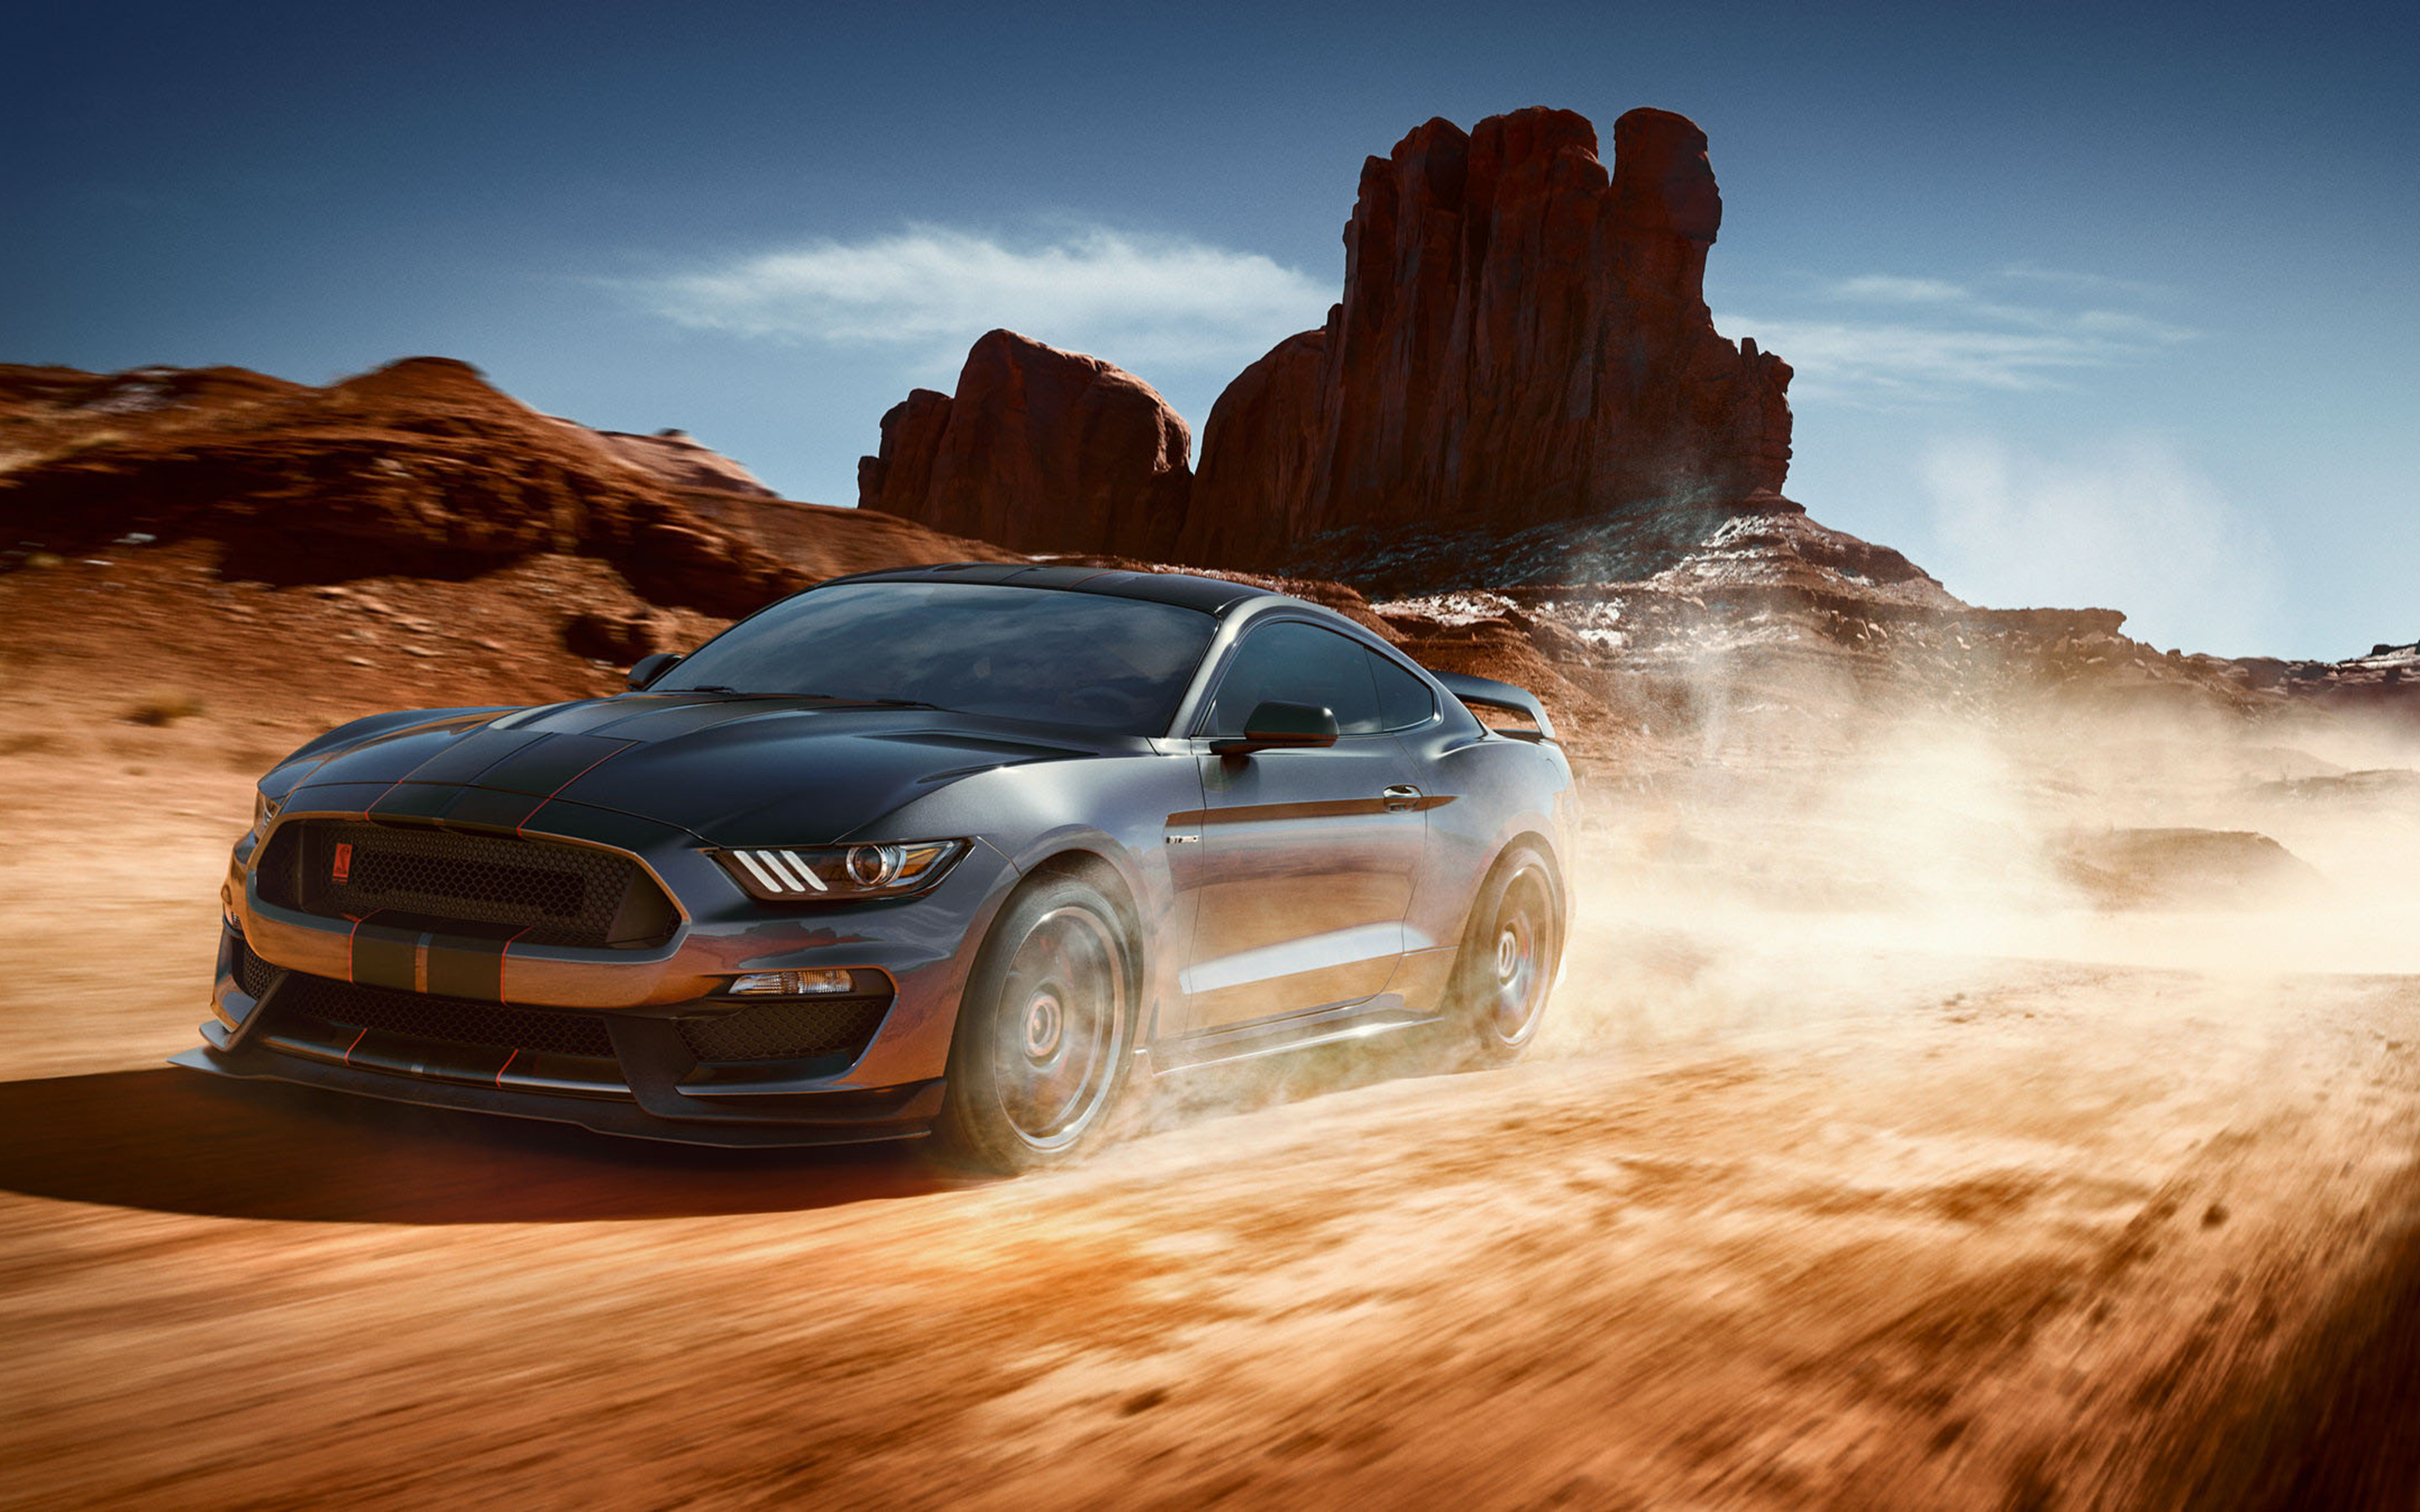 2880x1800 Ford Mustang Shelby GT350 Macbook Pro Retina HD ...